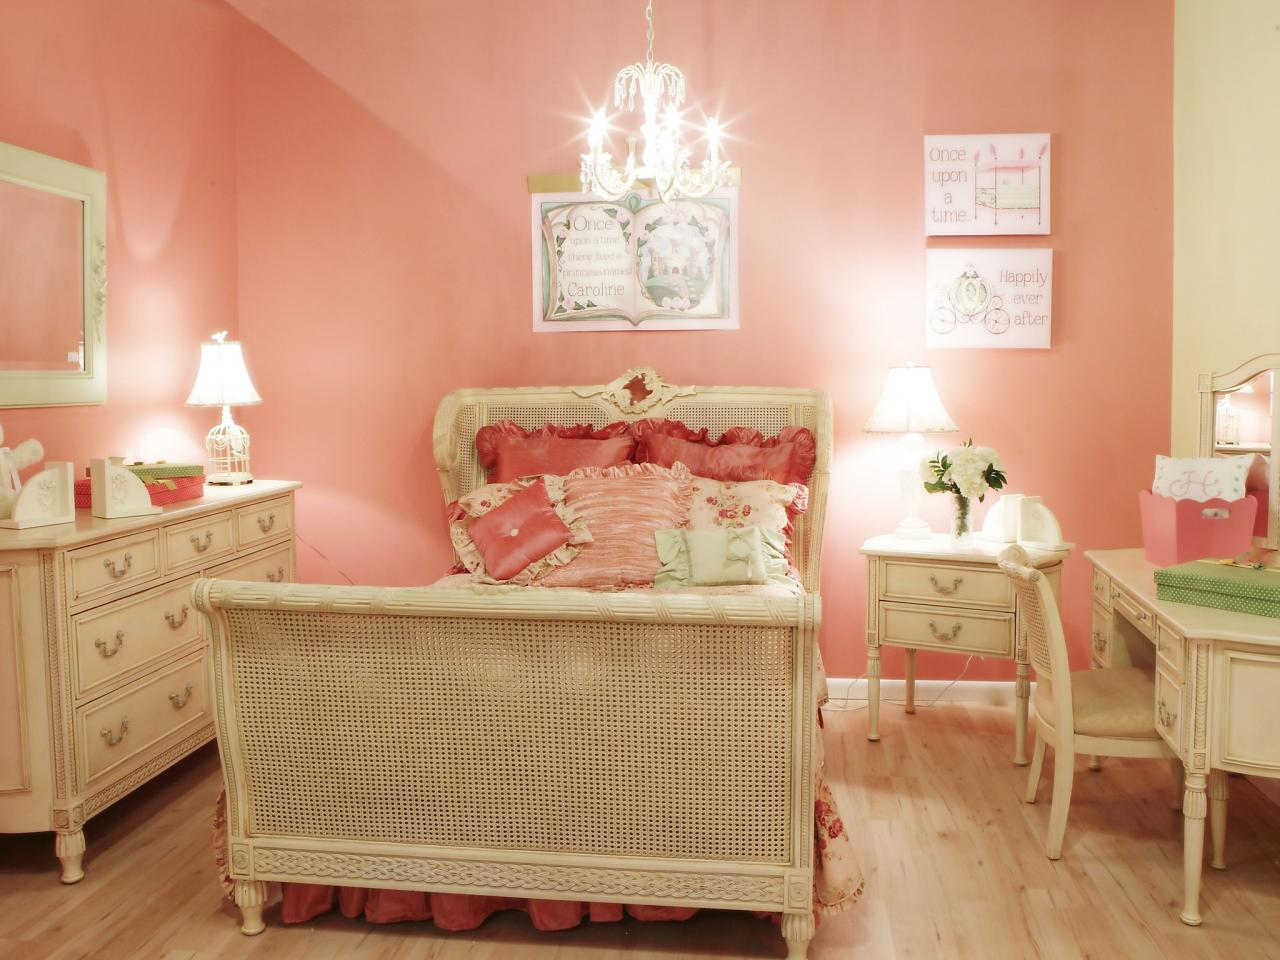 Bedroom color design for girls - Girls Bedroom Color Schemes